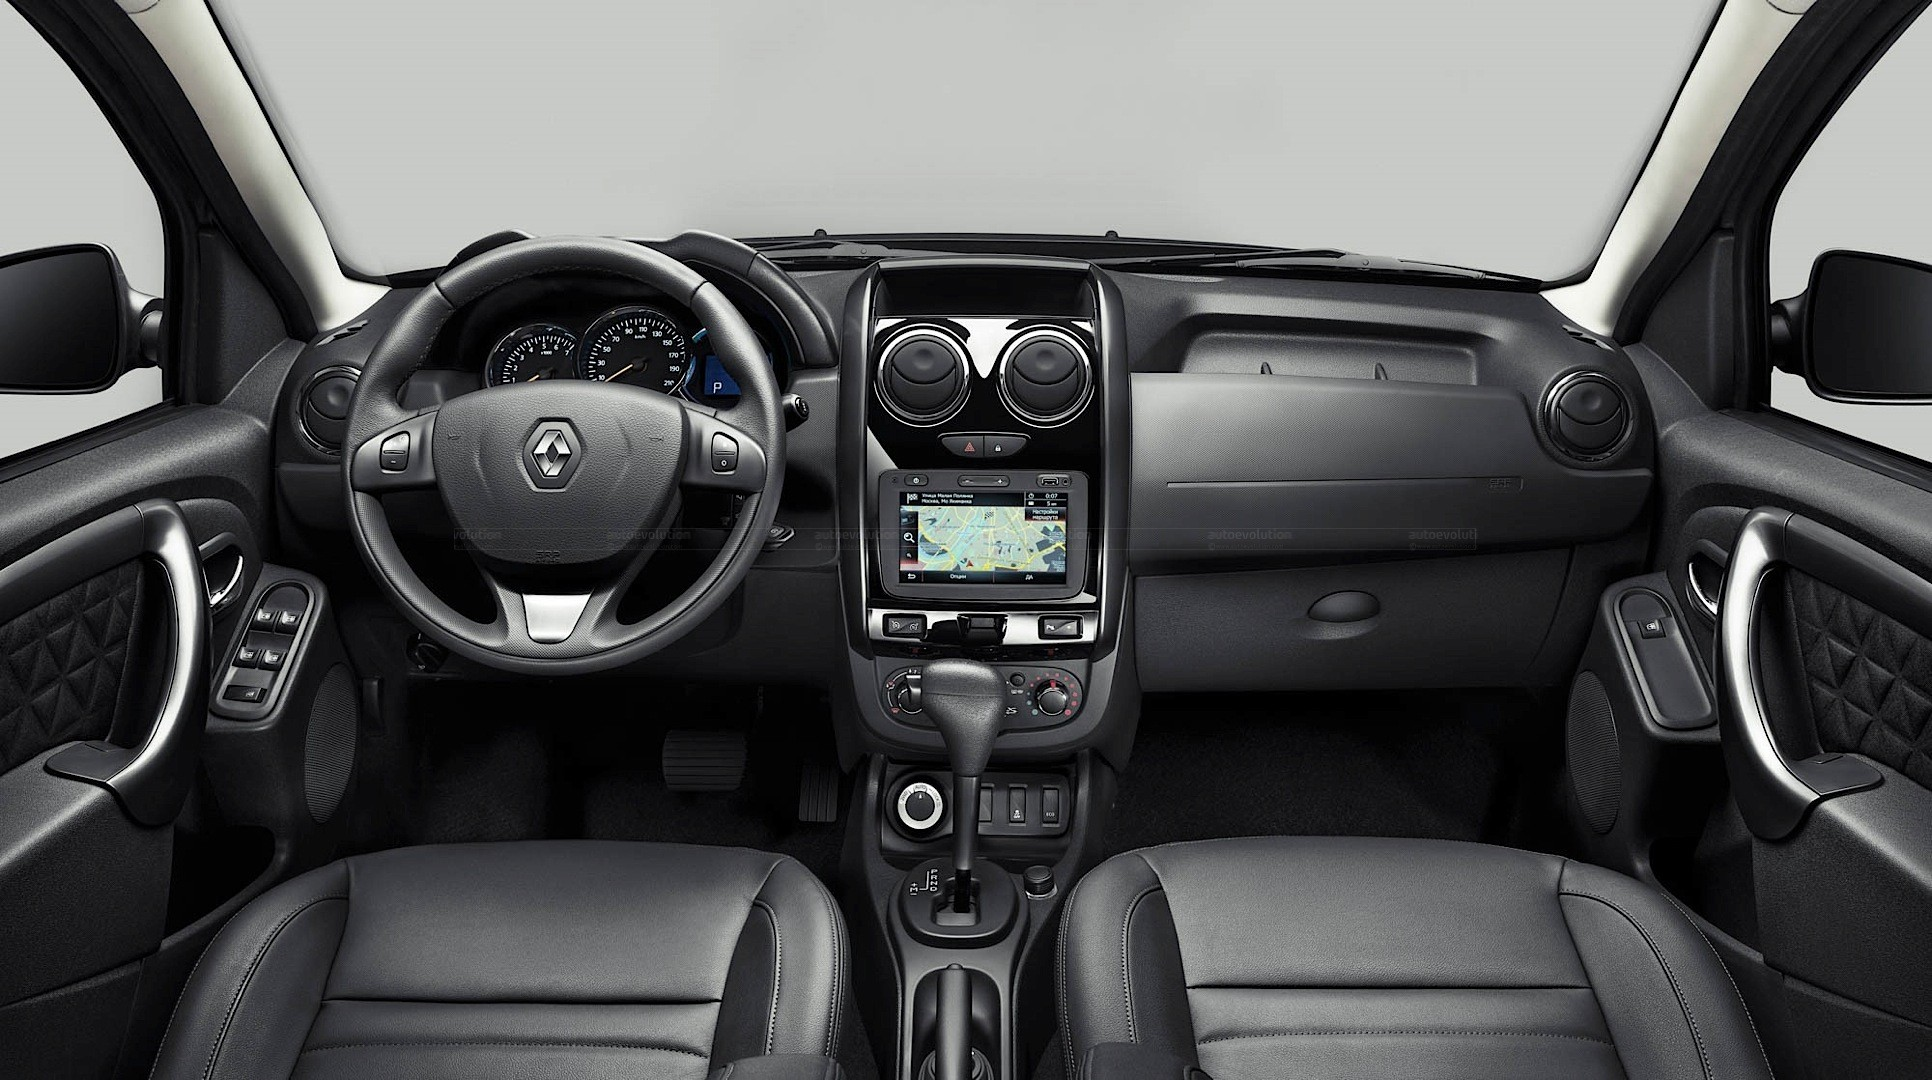 2015 Renault Duster Interior